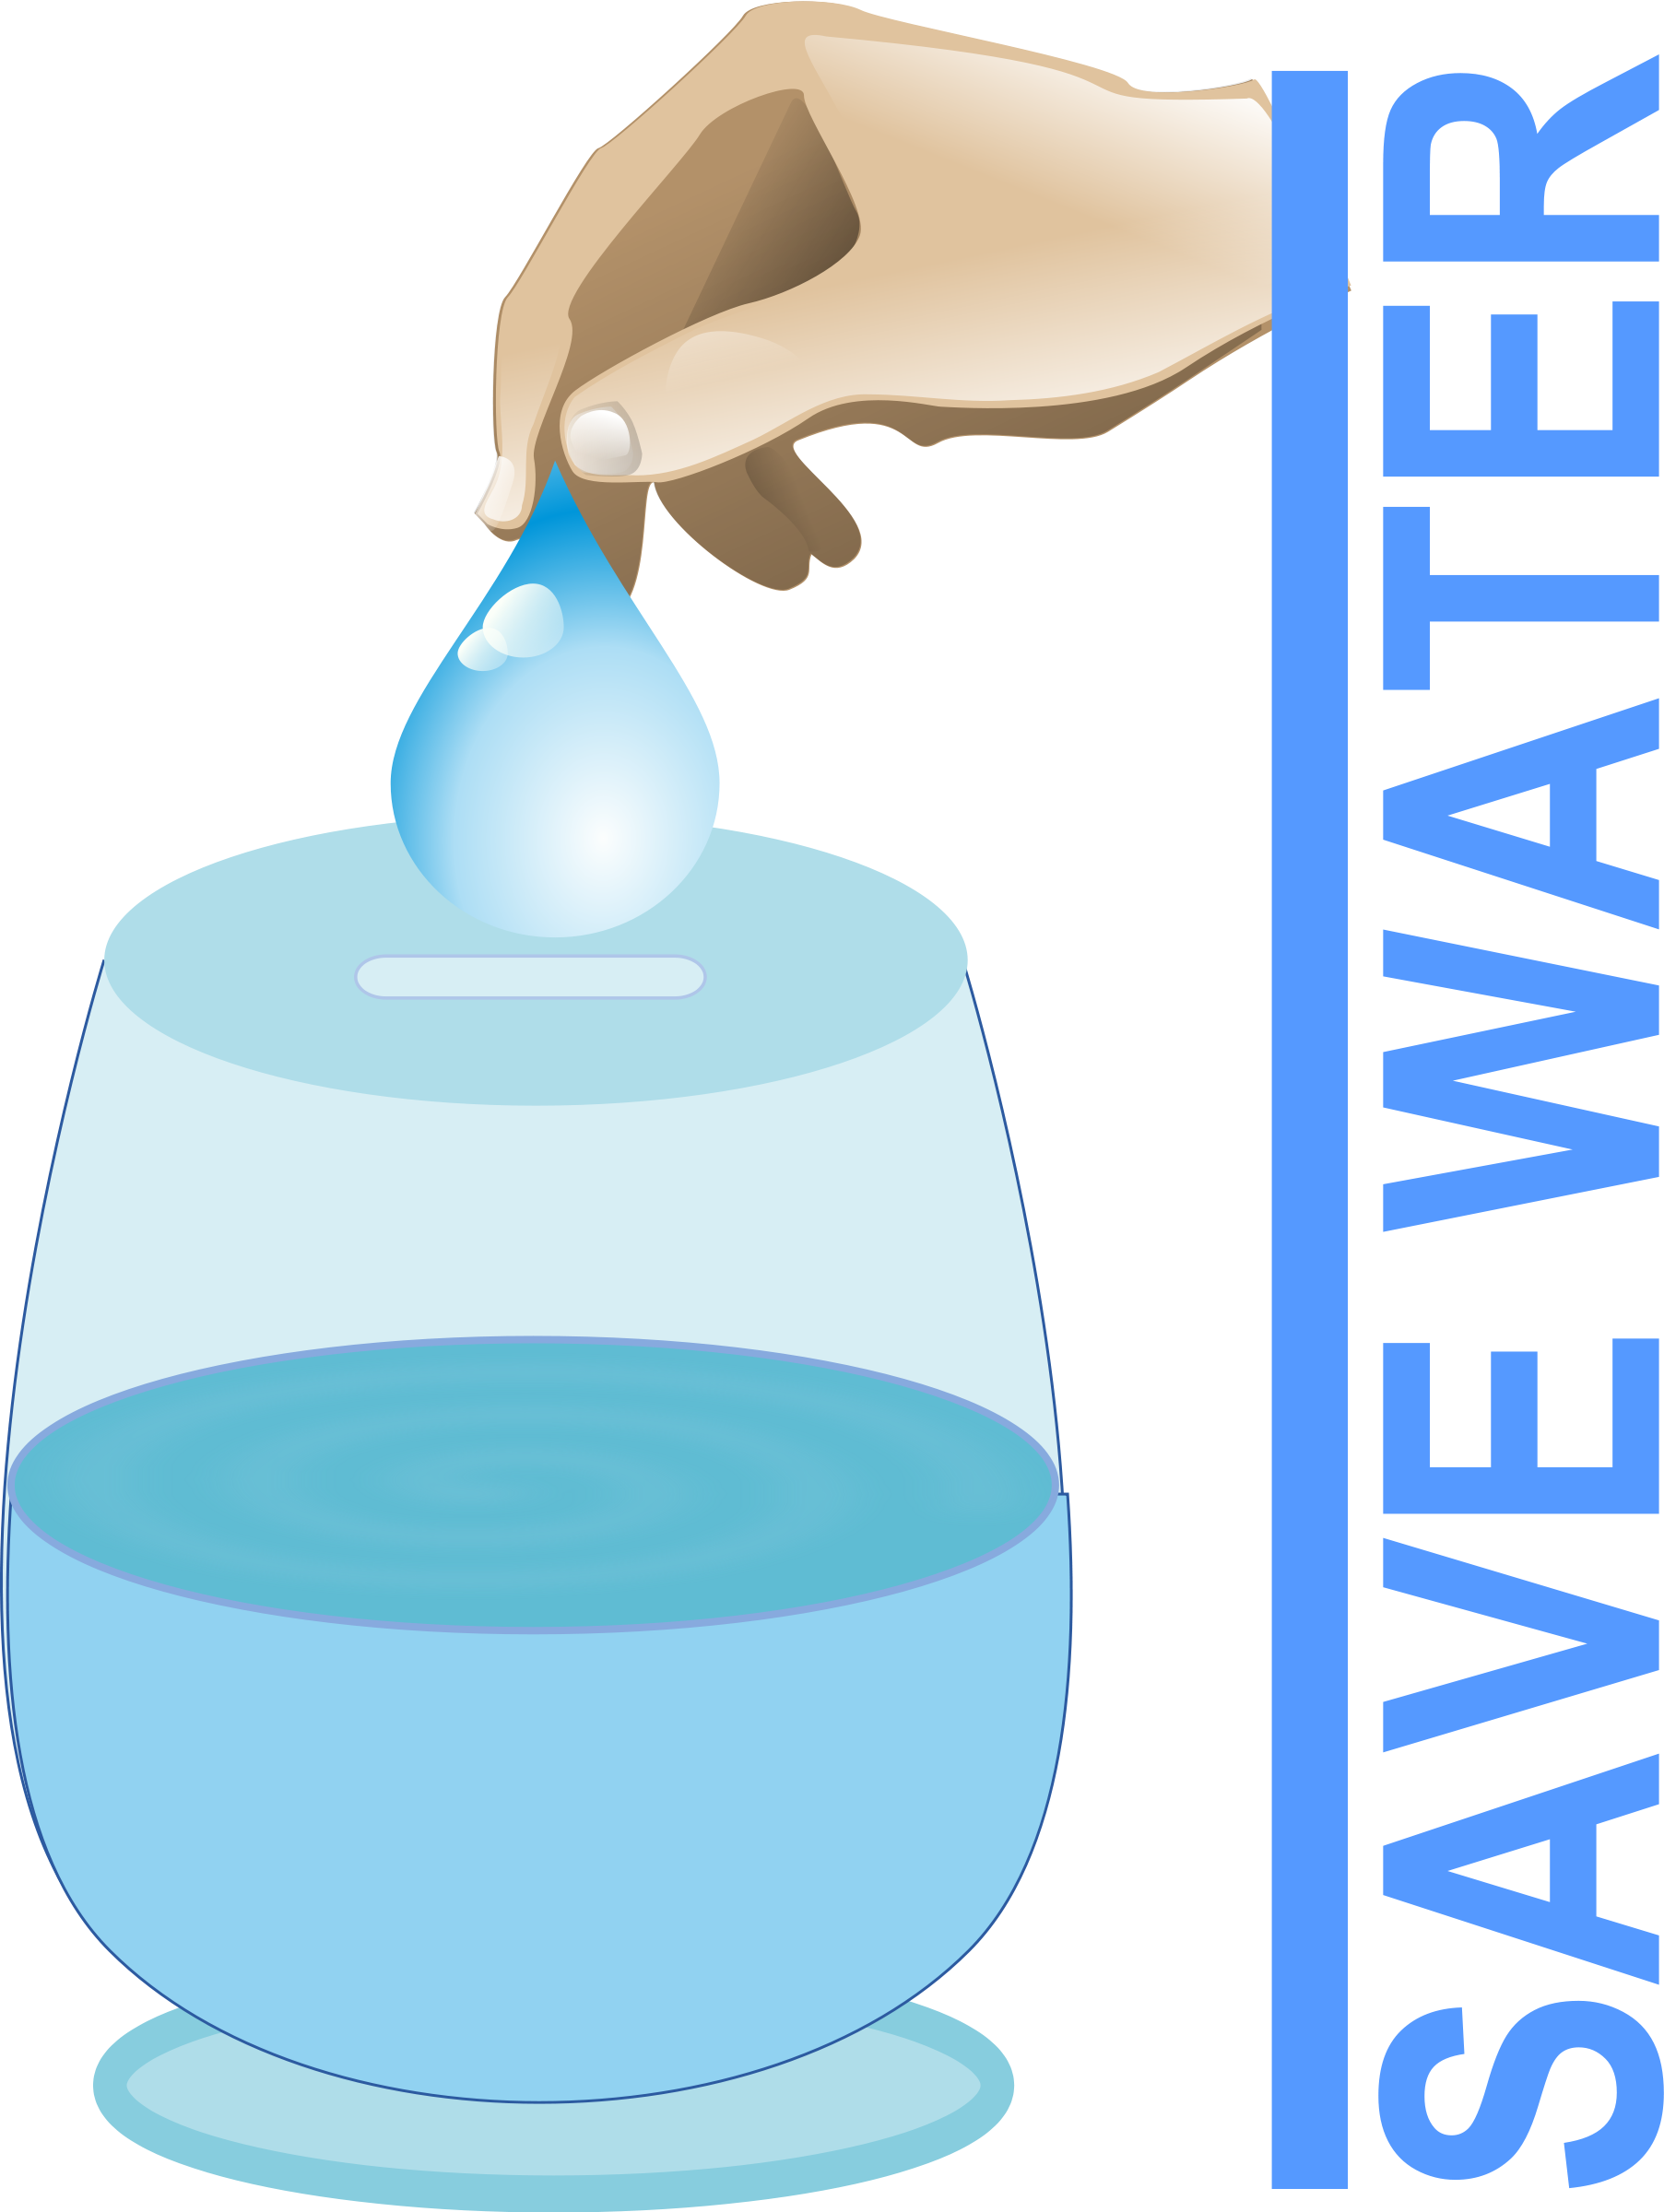 Water conseervation clipart image transparent library Clipart - Save Water | Water signs in 2019 | Save water, Water signs ... image transparent library